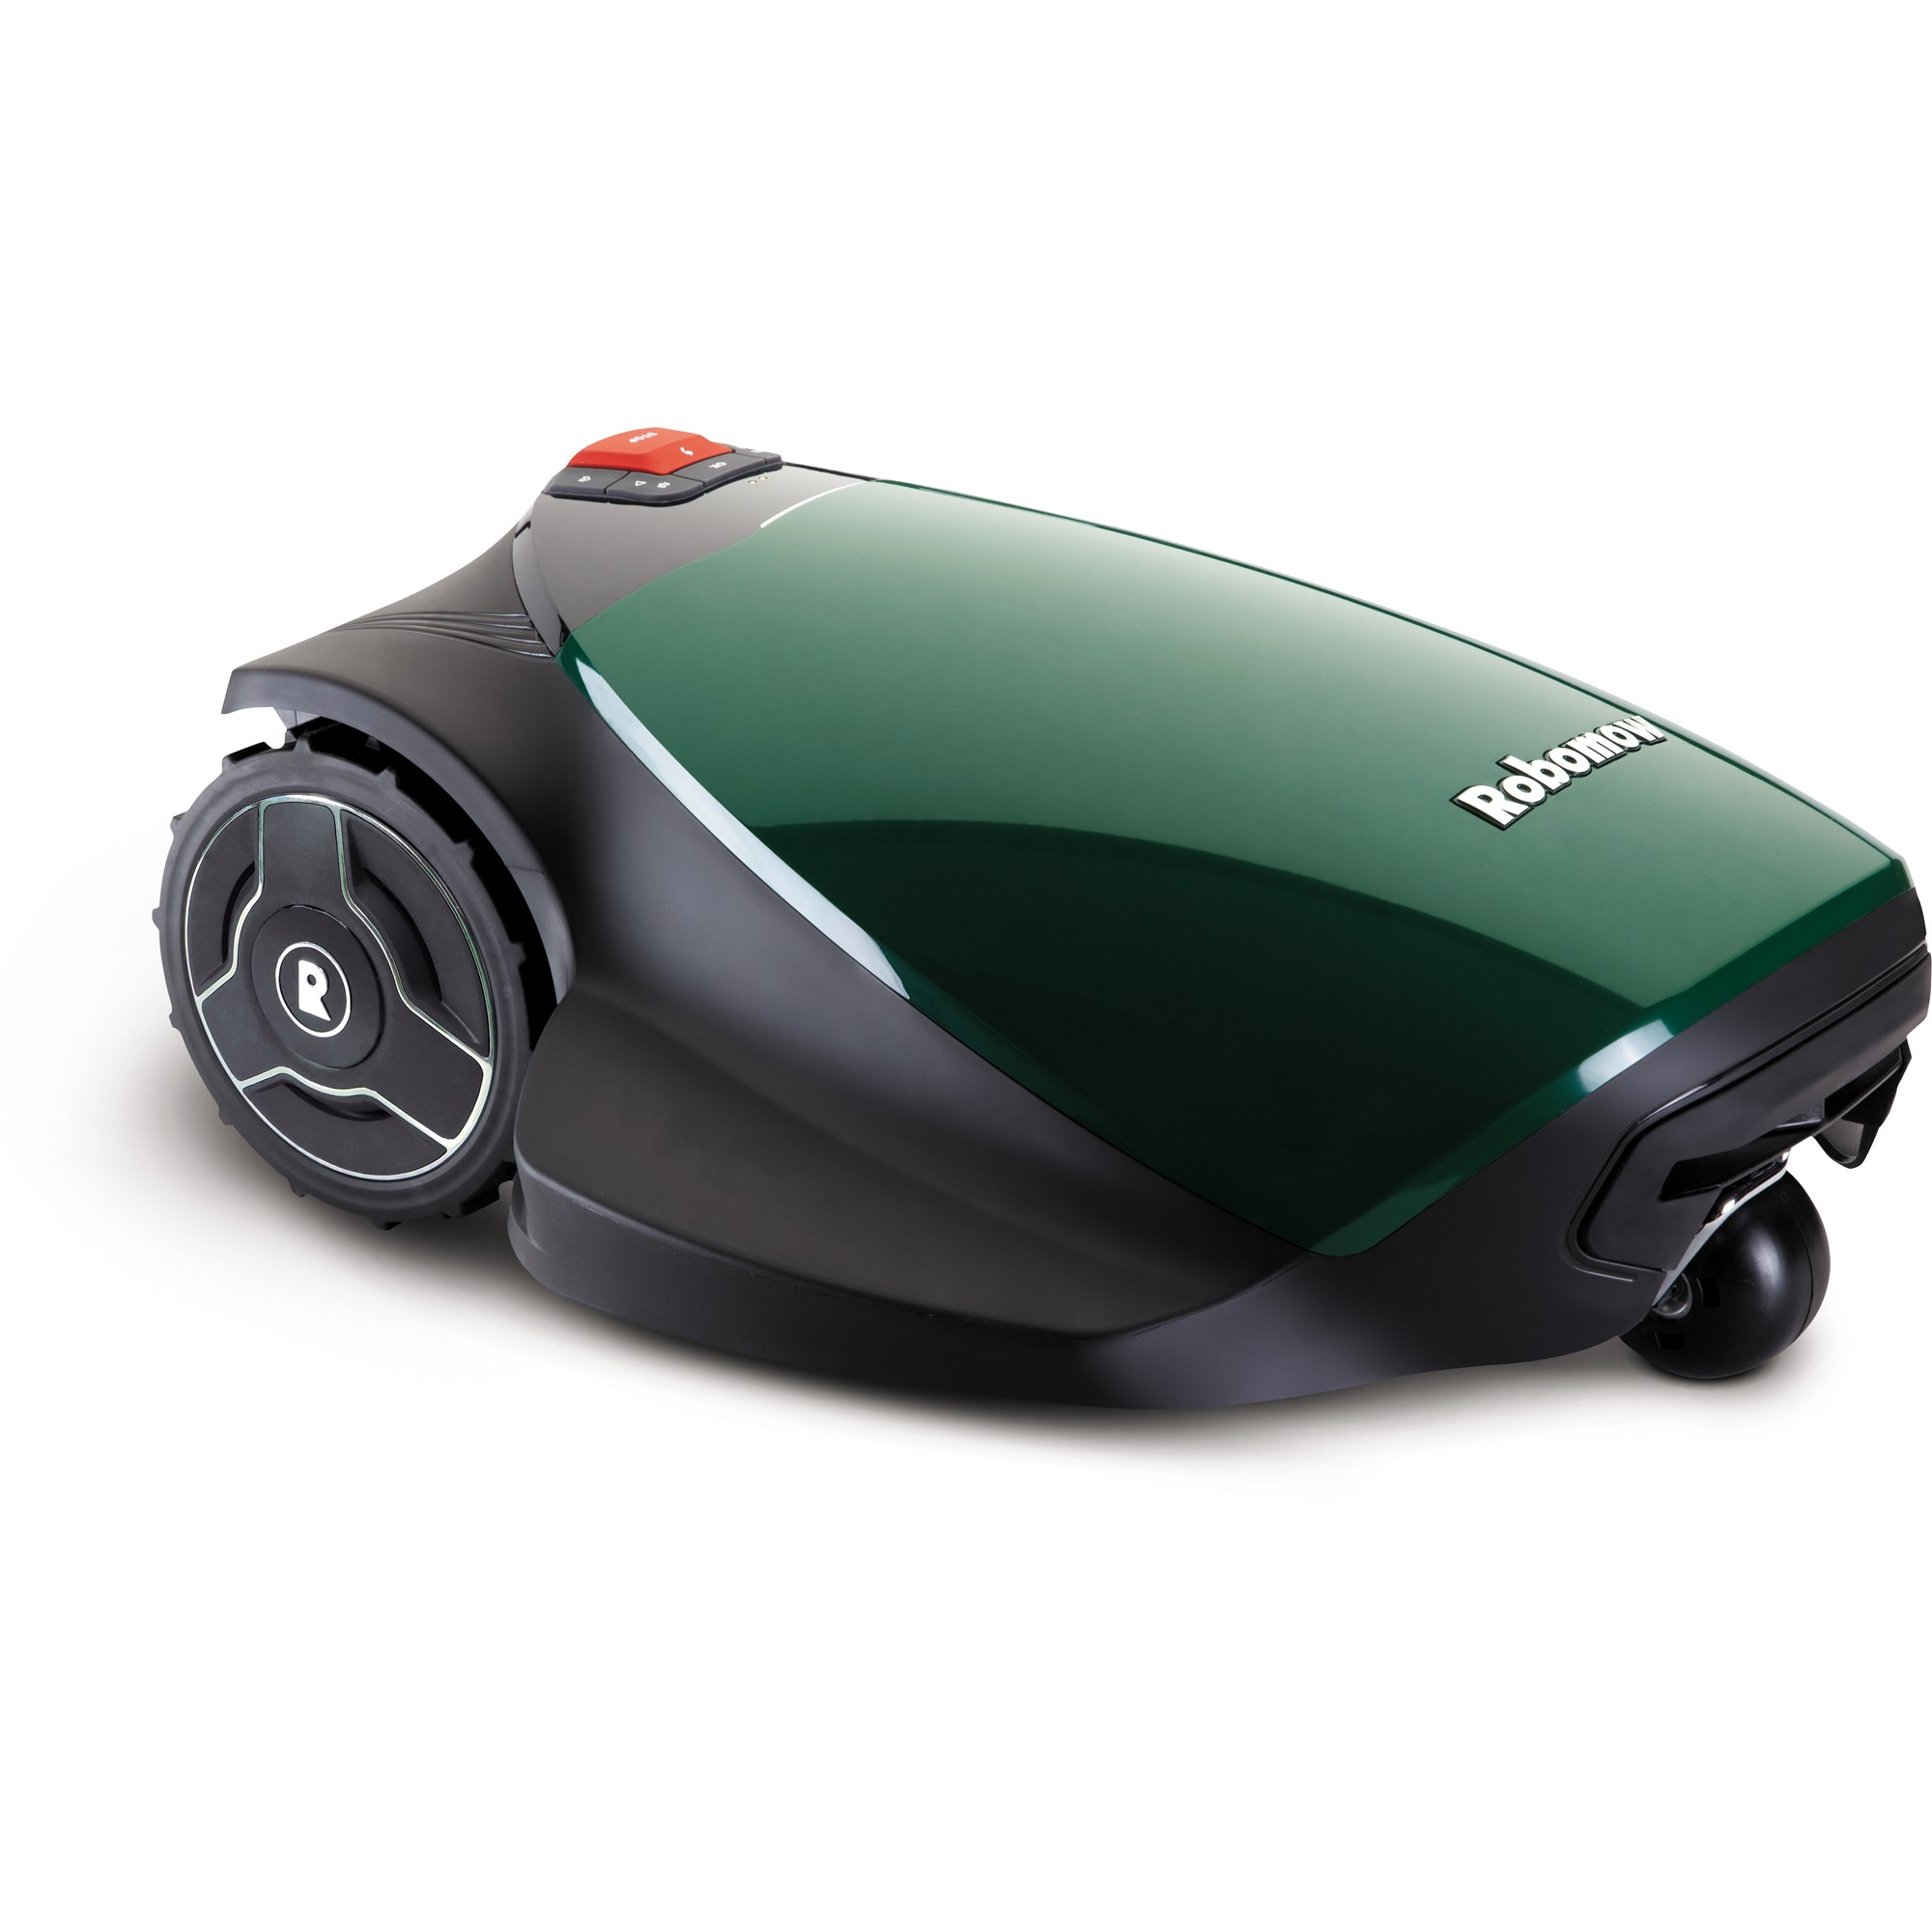 Robot lawn mowers are a thing now curbed for Honda miimo usa price